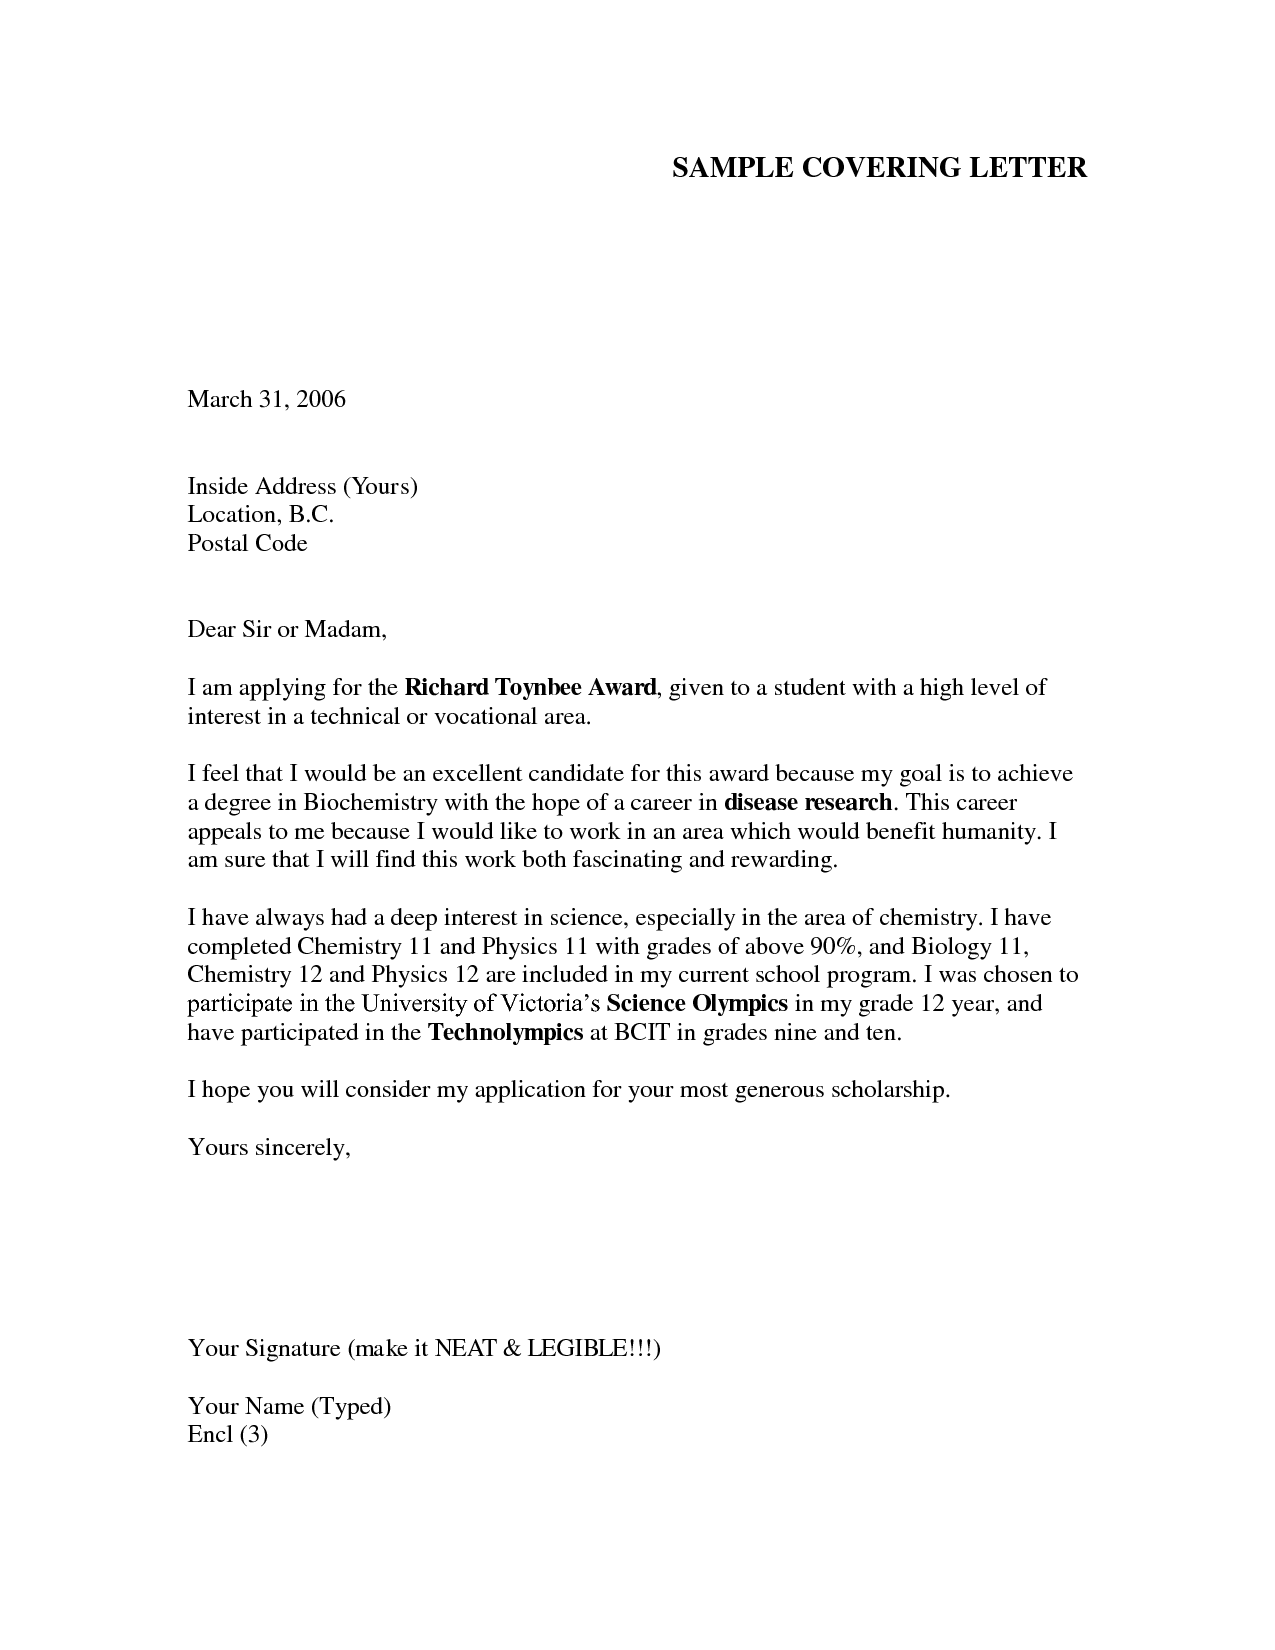 example of covering letter for employment - cover letter example for job application cover letter